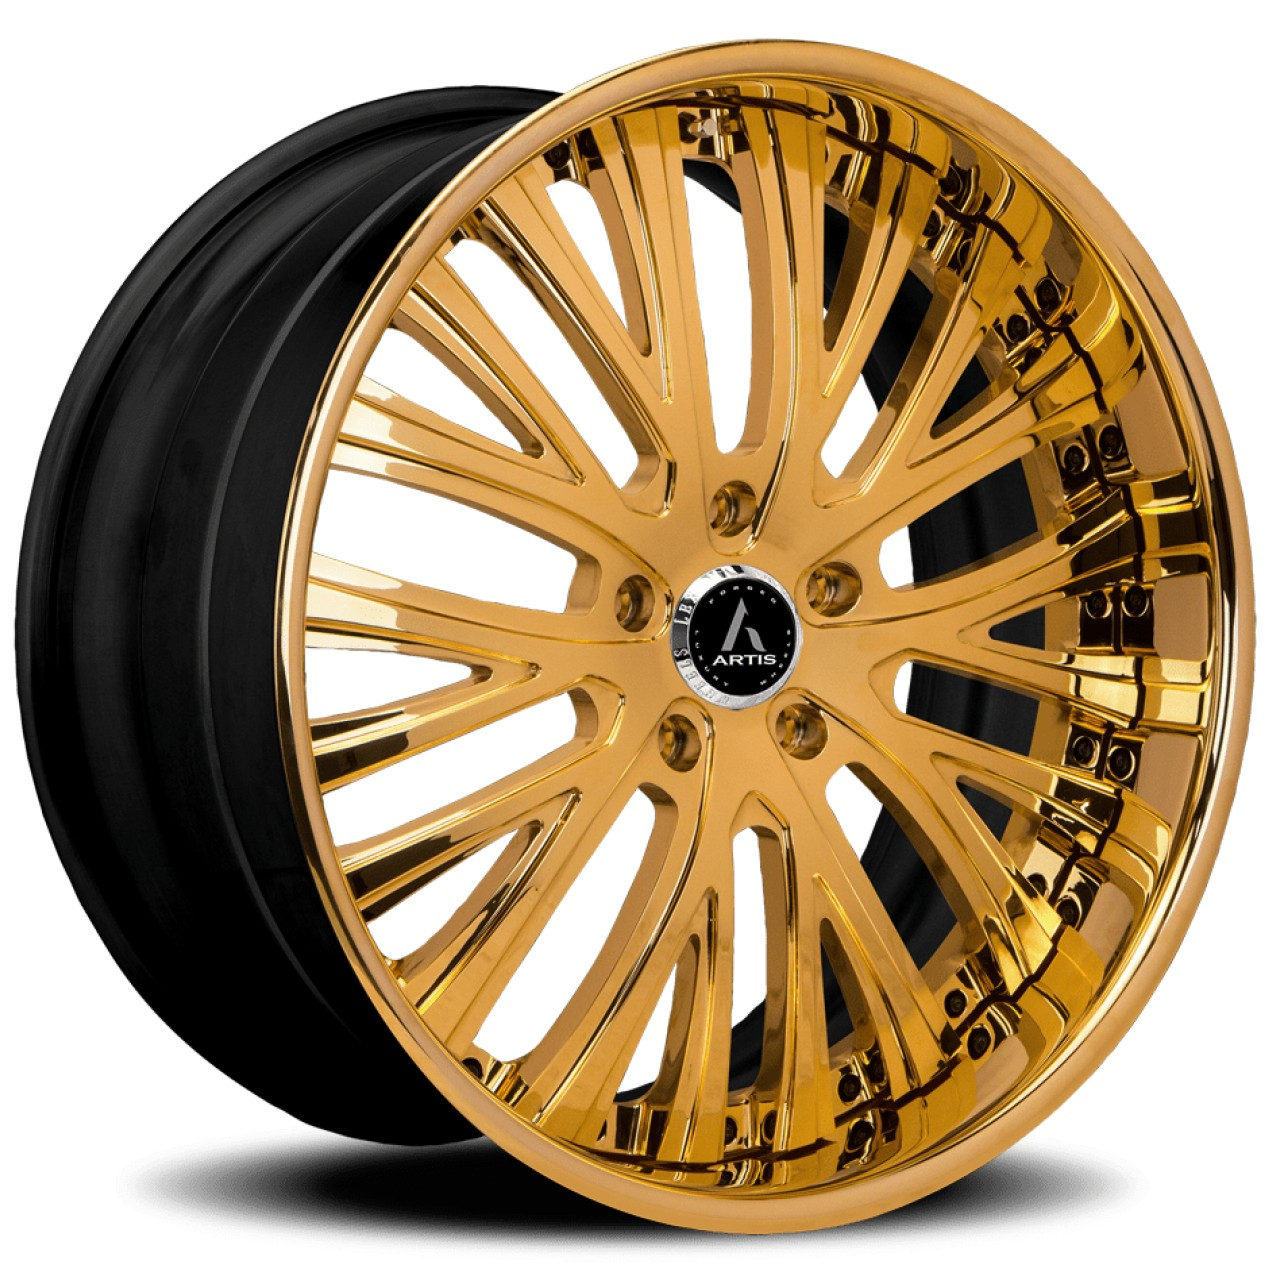 Artis Forged Woodward wheel with Gold finish